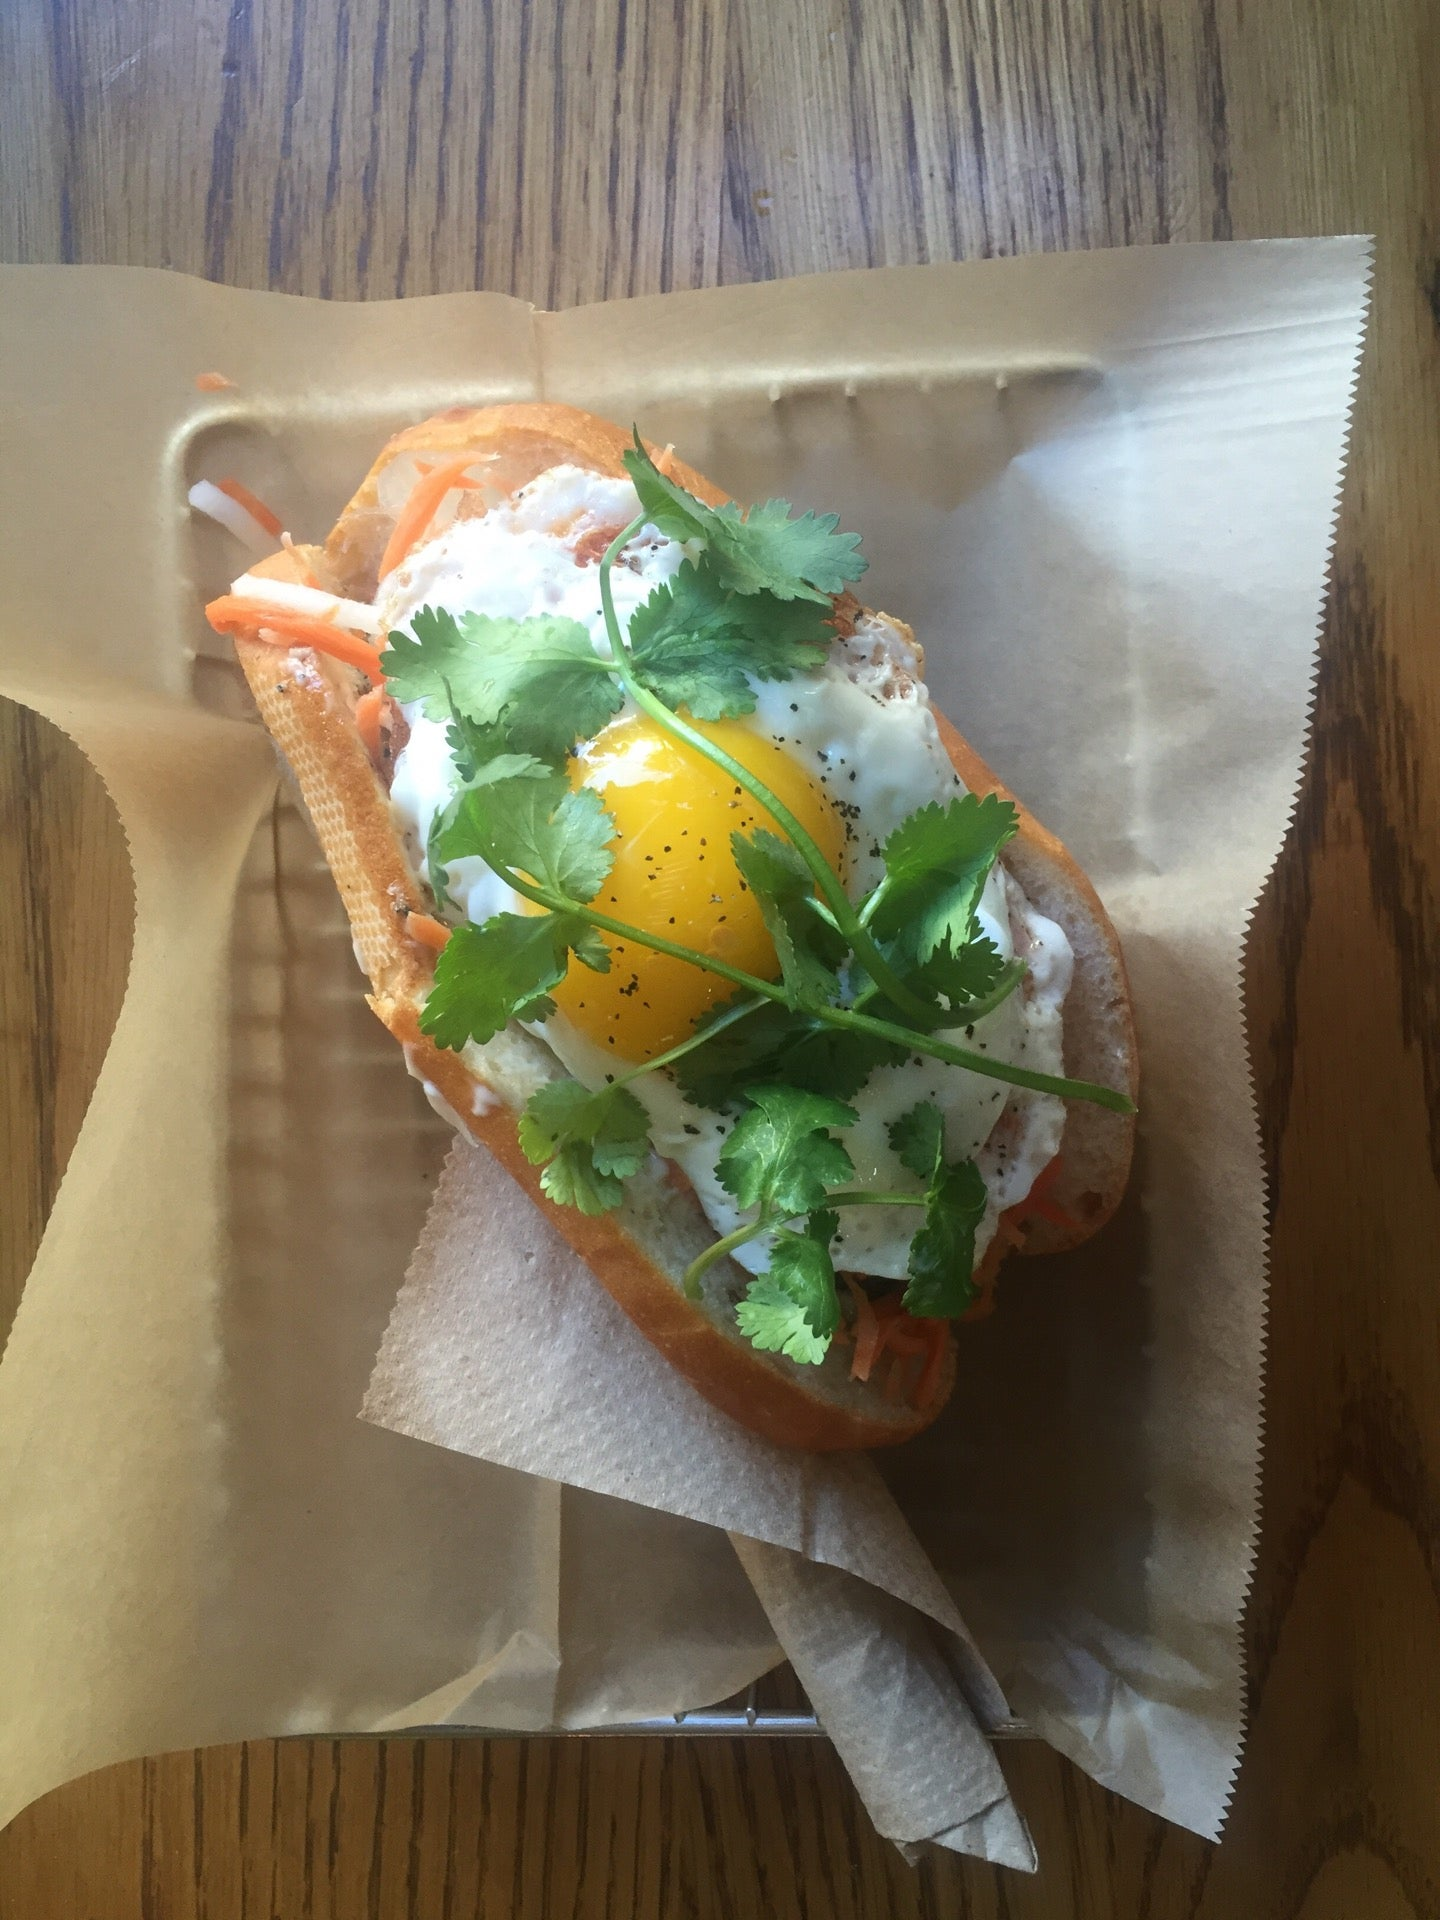 Lemongrass Pork Banh Mi With Poached Egg